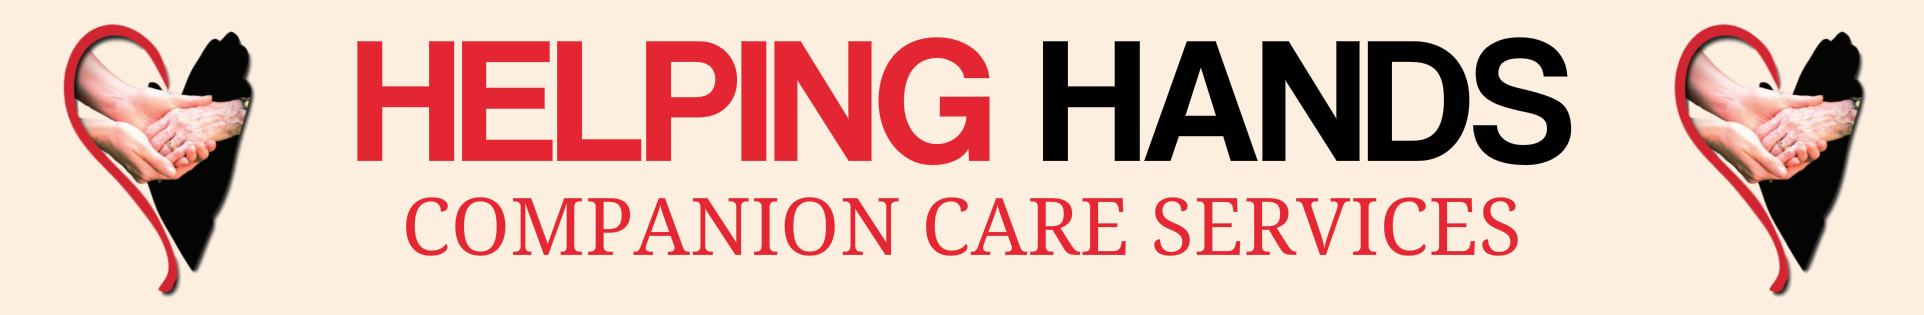 Helping Hands Companion Care Services